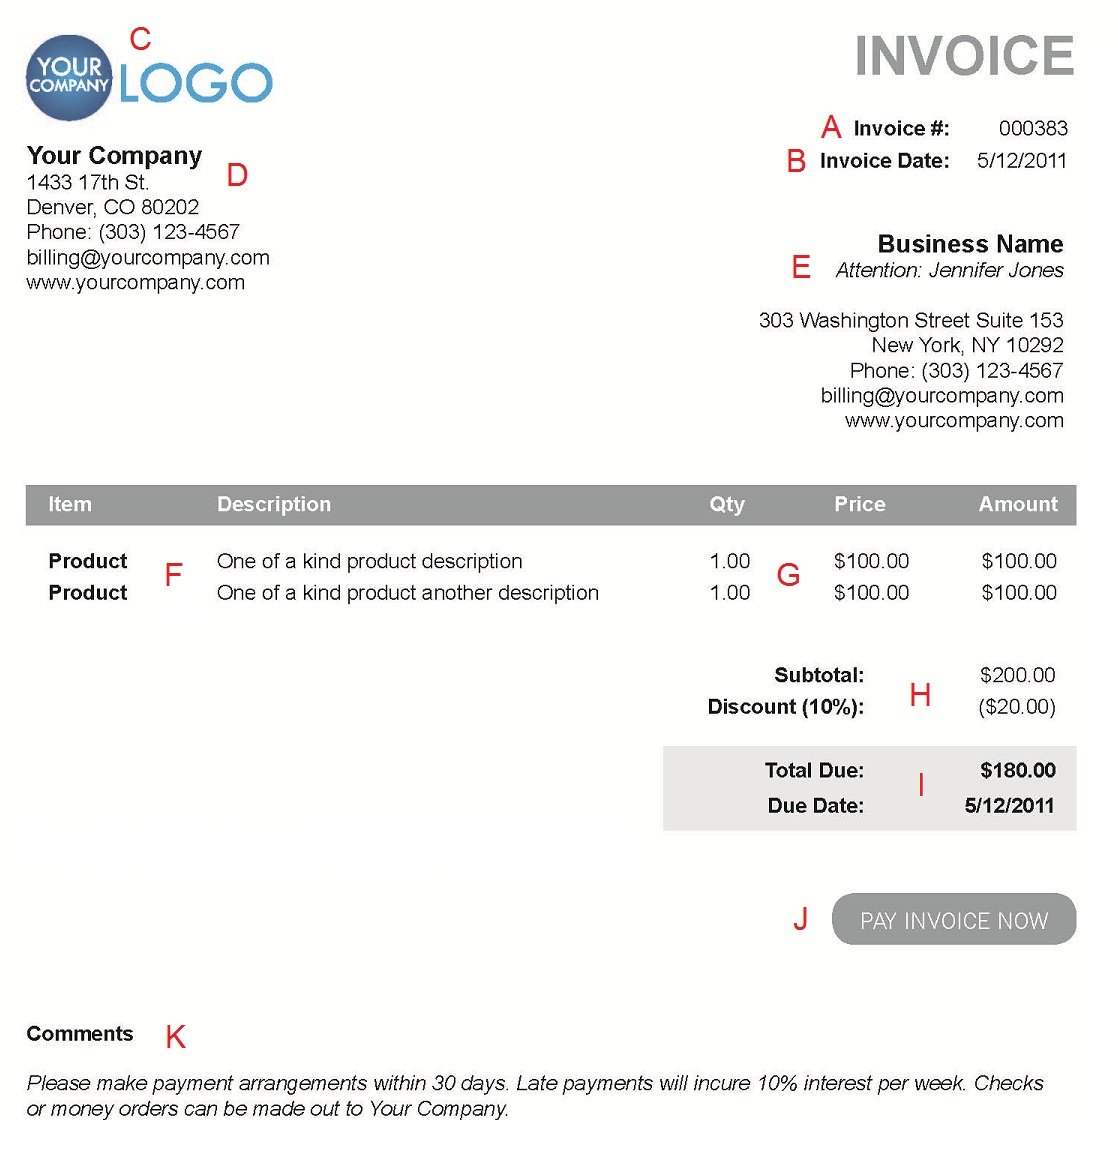 Shopdesignsus  Unique The  Different Sections Of An Electronic Payment Invoice With Fetching A  With Beautiful Salary Receipt Template Also Goods Receipt Note In Addition Receipts For Rent Payments And Best Portable Receipt Scanner As Well As Receipt Of Lic Premium Paid Additionally Rent Receipt Format In Word From Paysimplecom With Shopdesignsus  Fetching The  Different Sections Of An Electronic Payment Invoice With Beautiful A  And Unique Salary Receipt Template Also Goods Receipt Note In Addition Receipts For Rent Payments From Paysimplecom